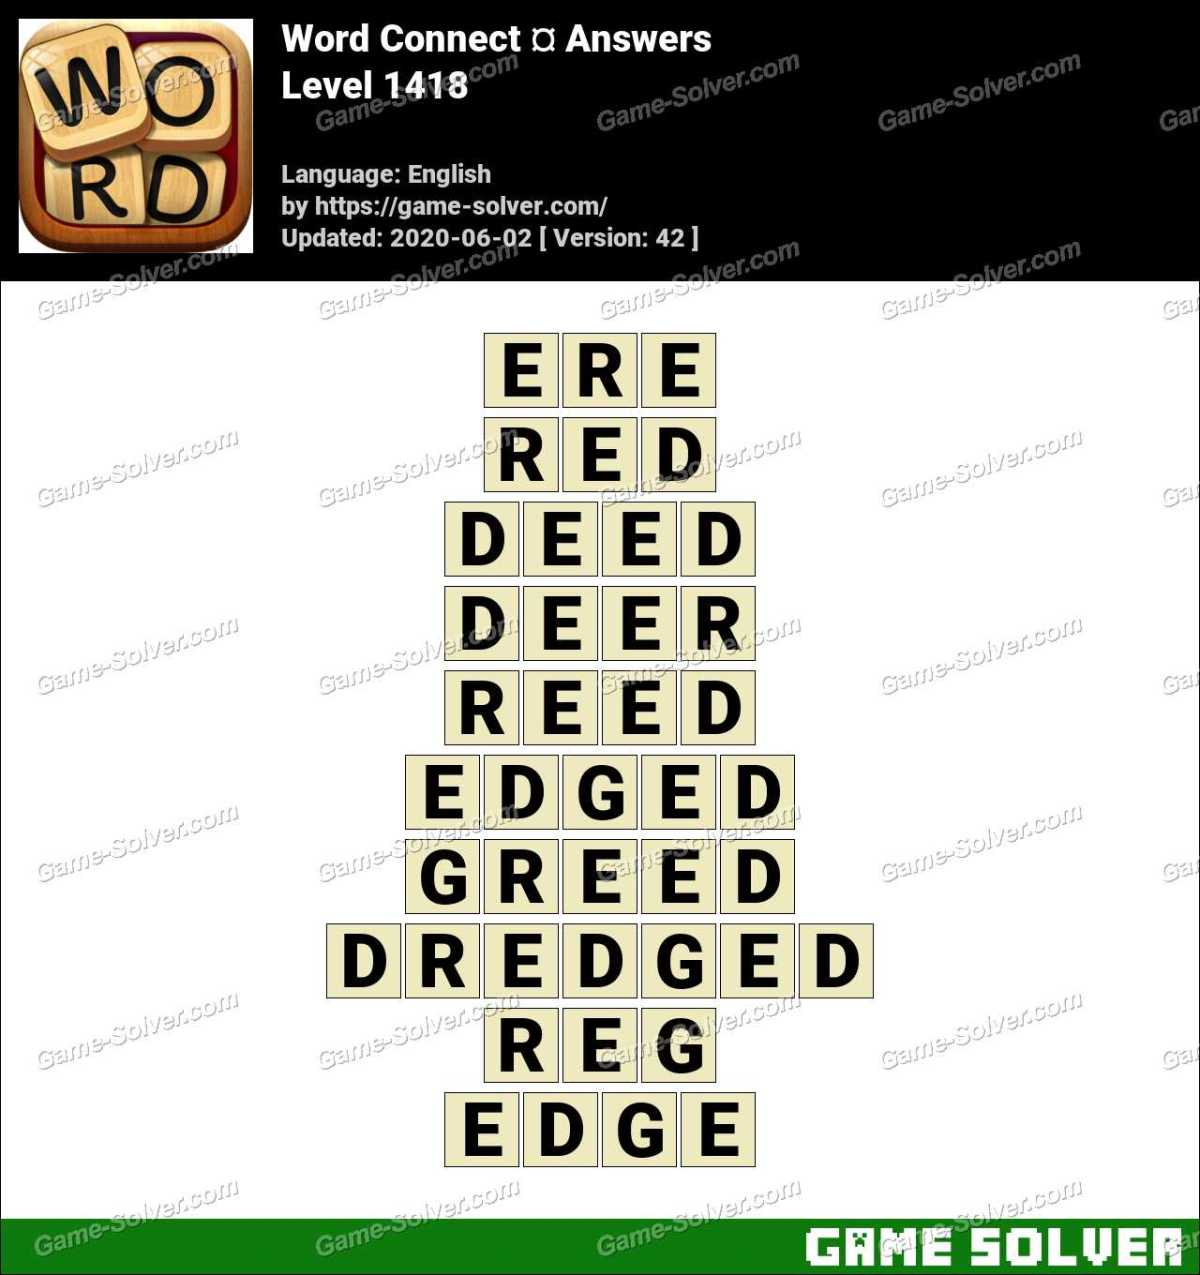 Word Connect Level 1418 Answers